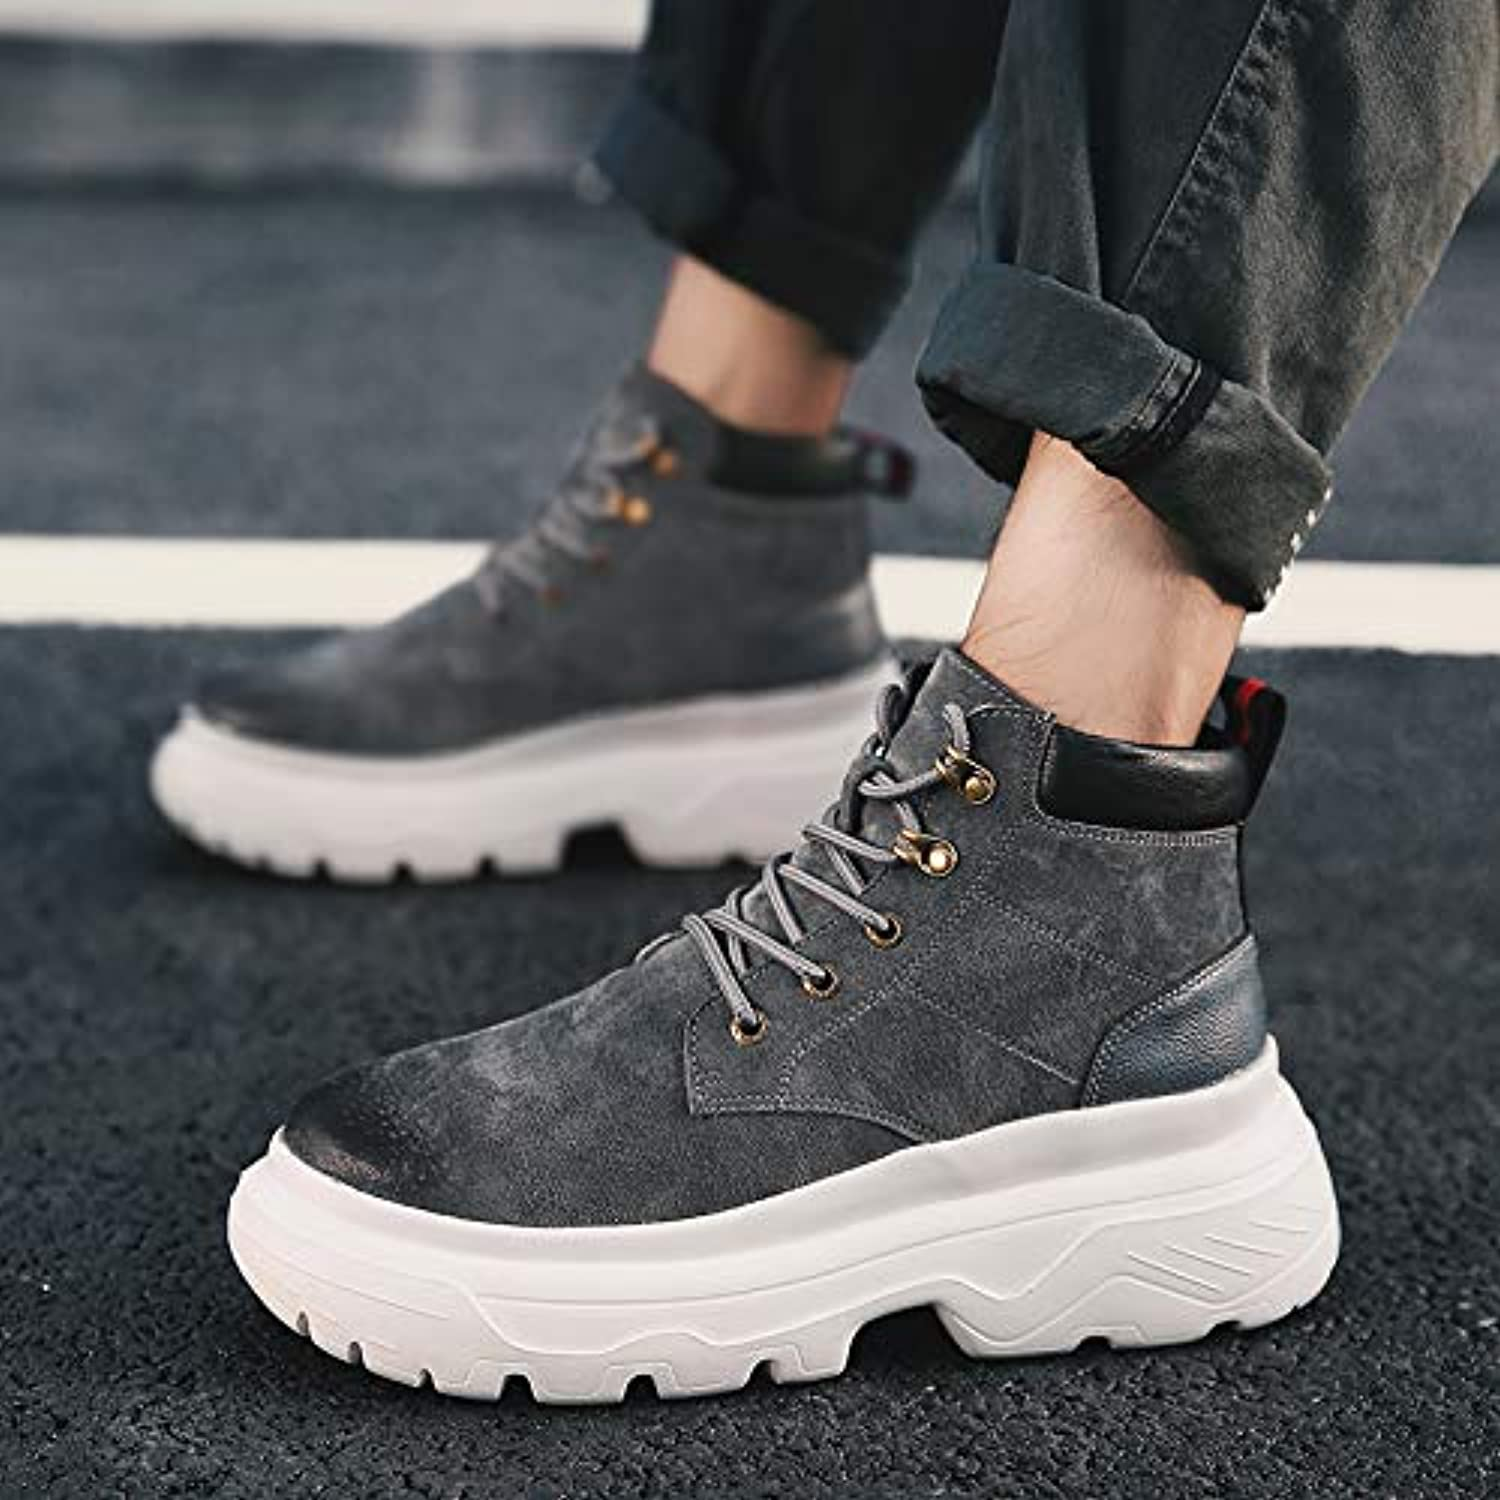 Shukun Men's boots Autumn Martin Boots Men'S High-Top Versatile Boots Increased Thick-Soled High-Cut Tooling Men'S Boots